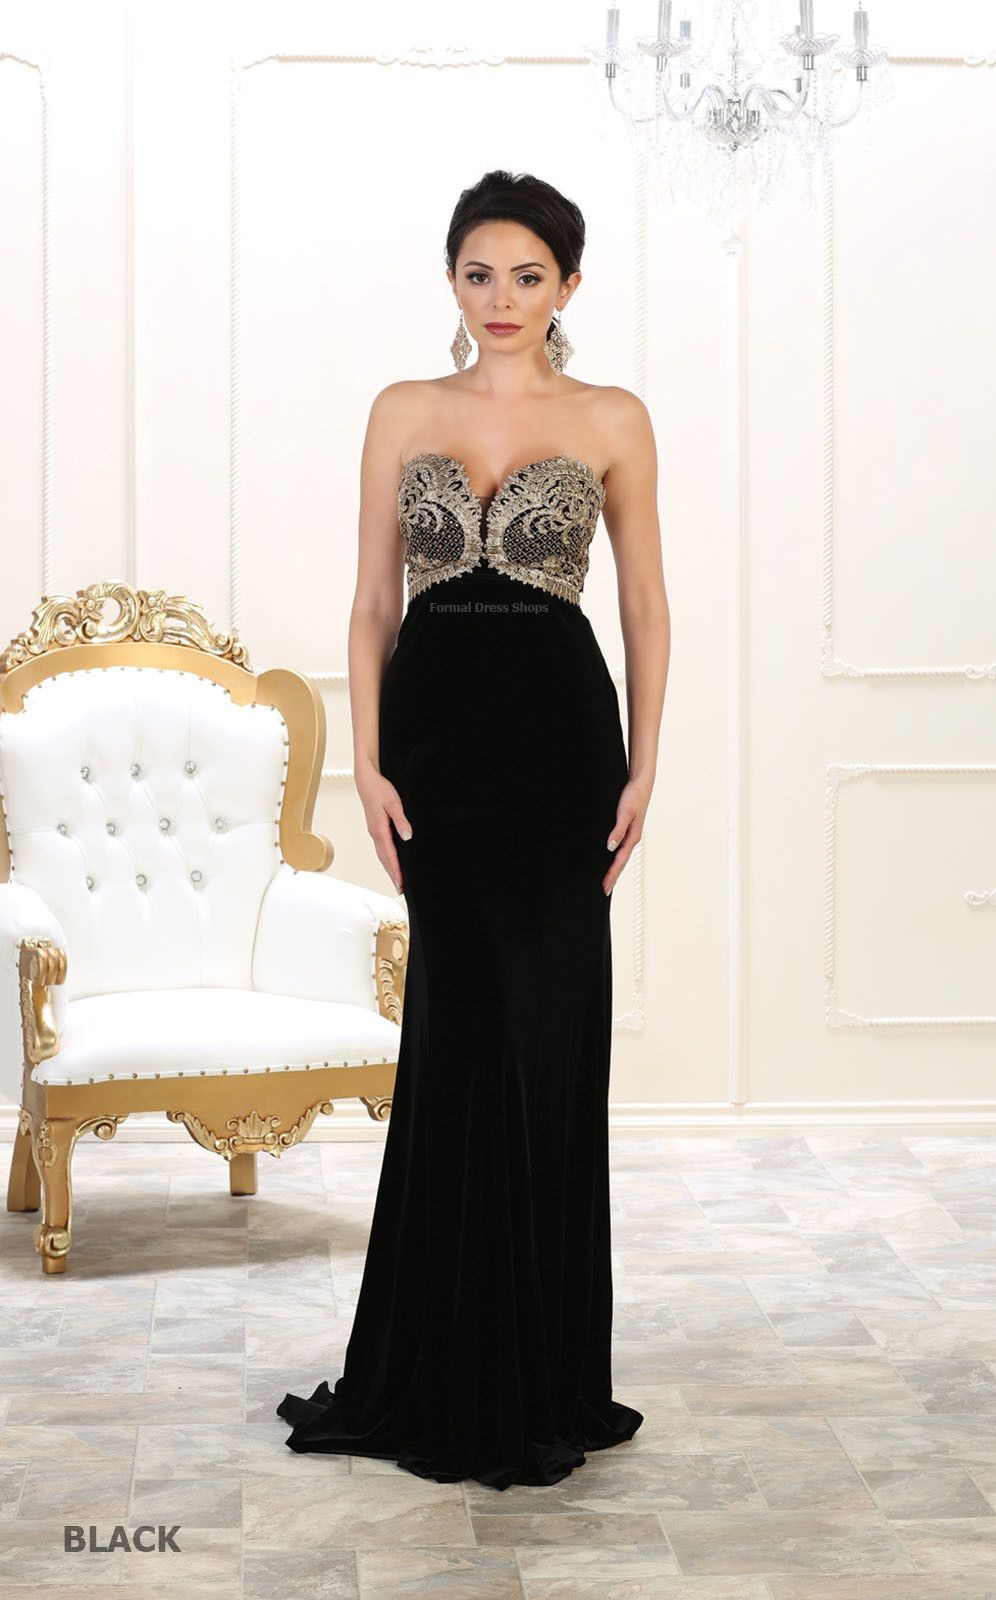 Awesome red carpet formal prom strapless gala evening gowns military